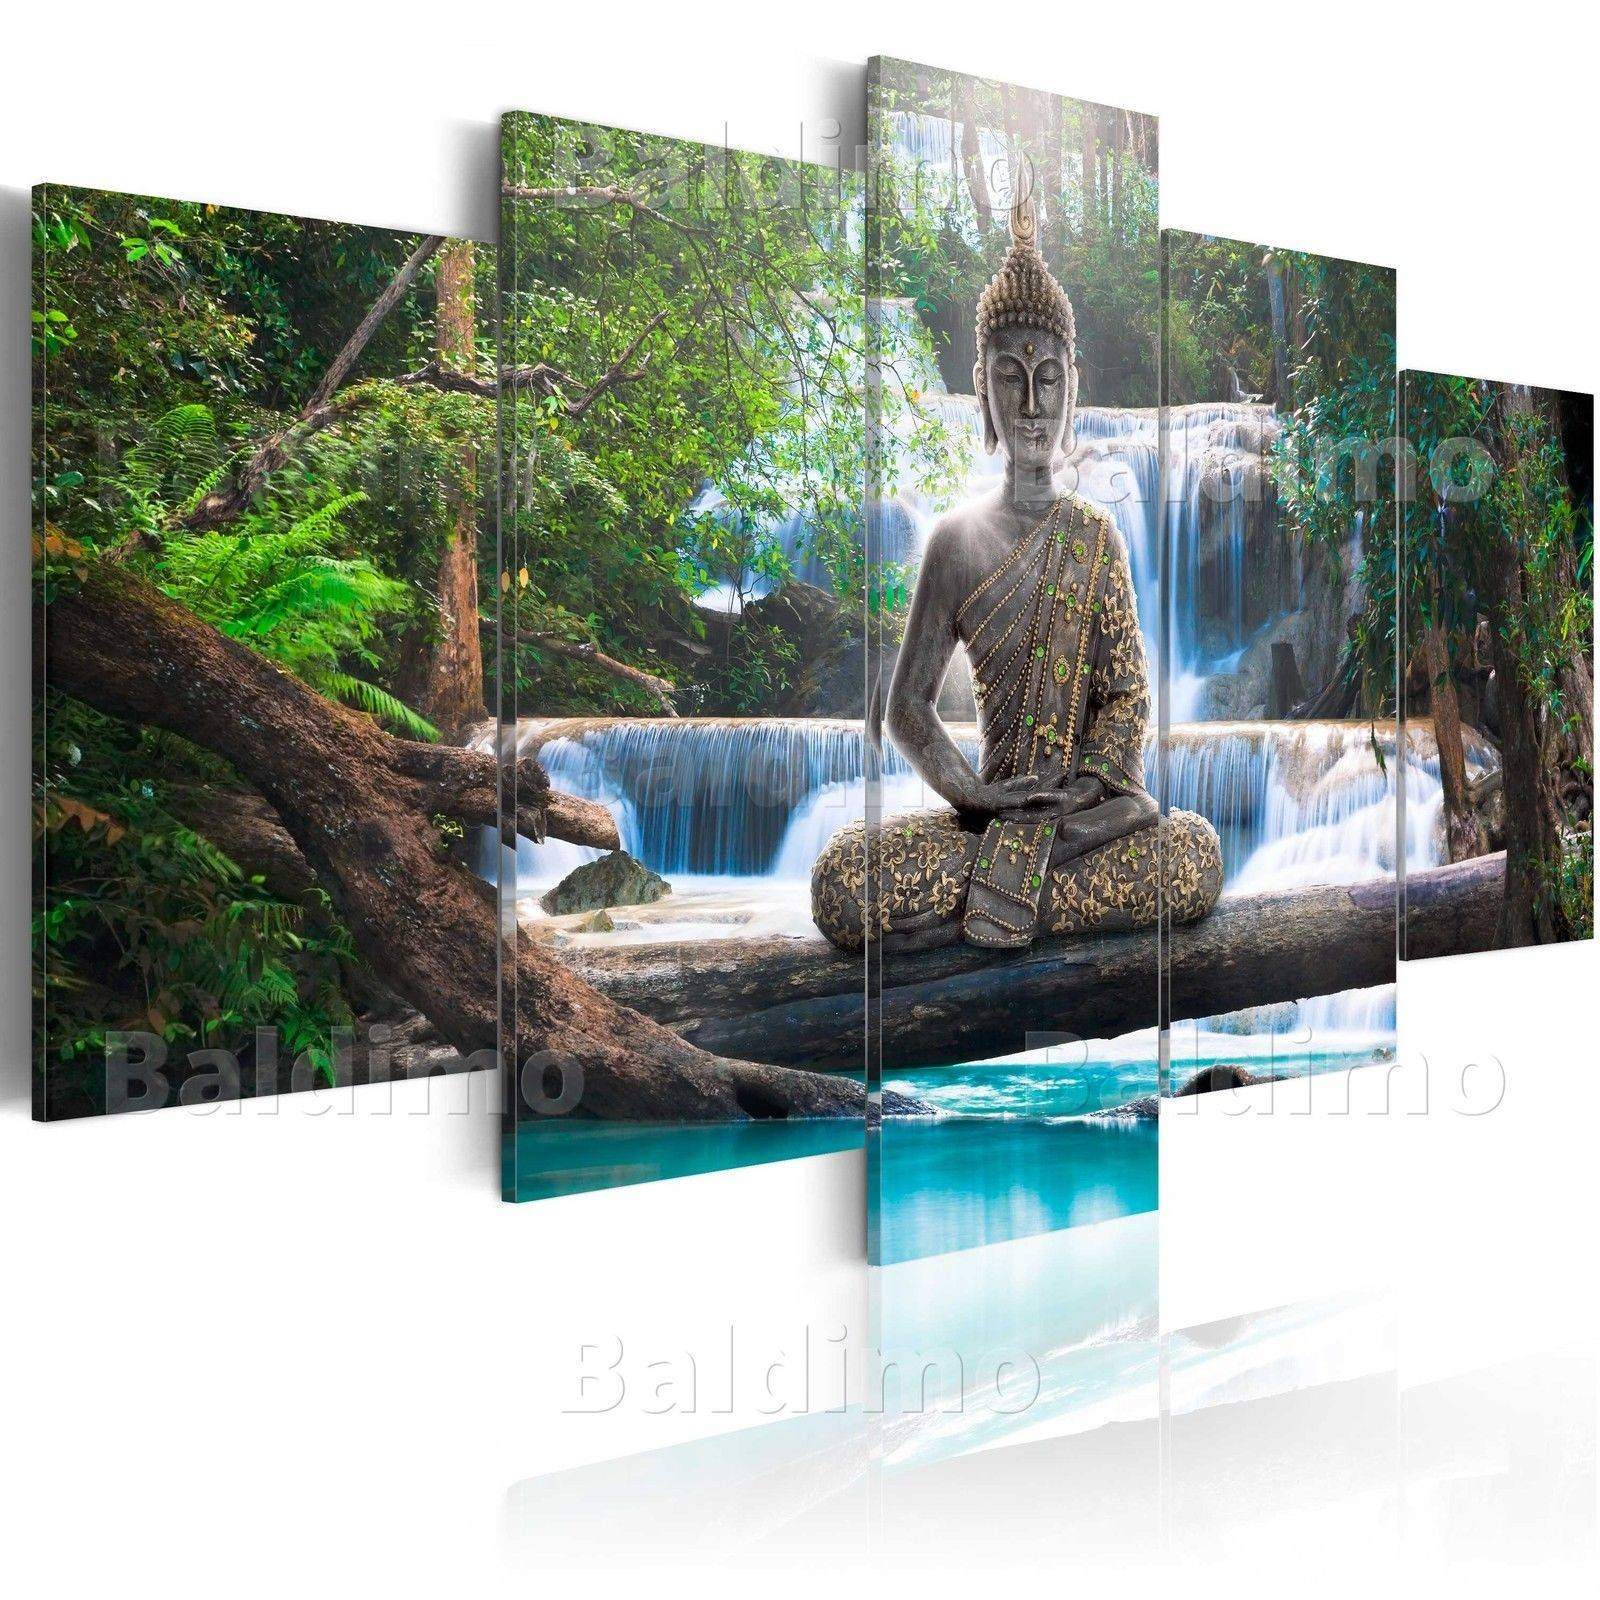 5Panels Large Buddha Waterfall Art Print Picture Canvas Wall Art With Regard To Most Current Large Buddha Wall Art (View 1 of 15)